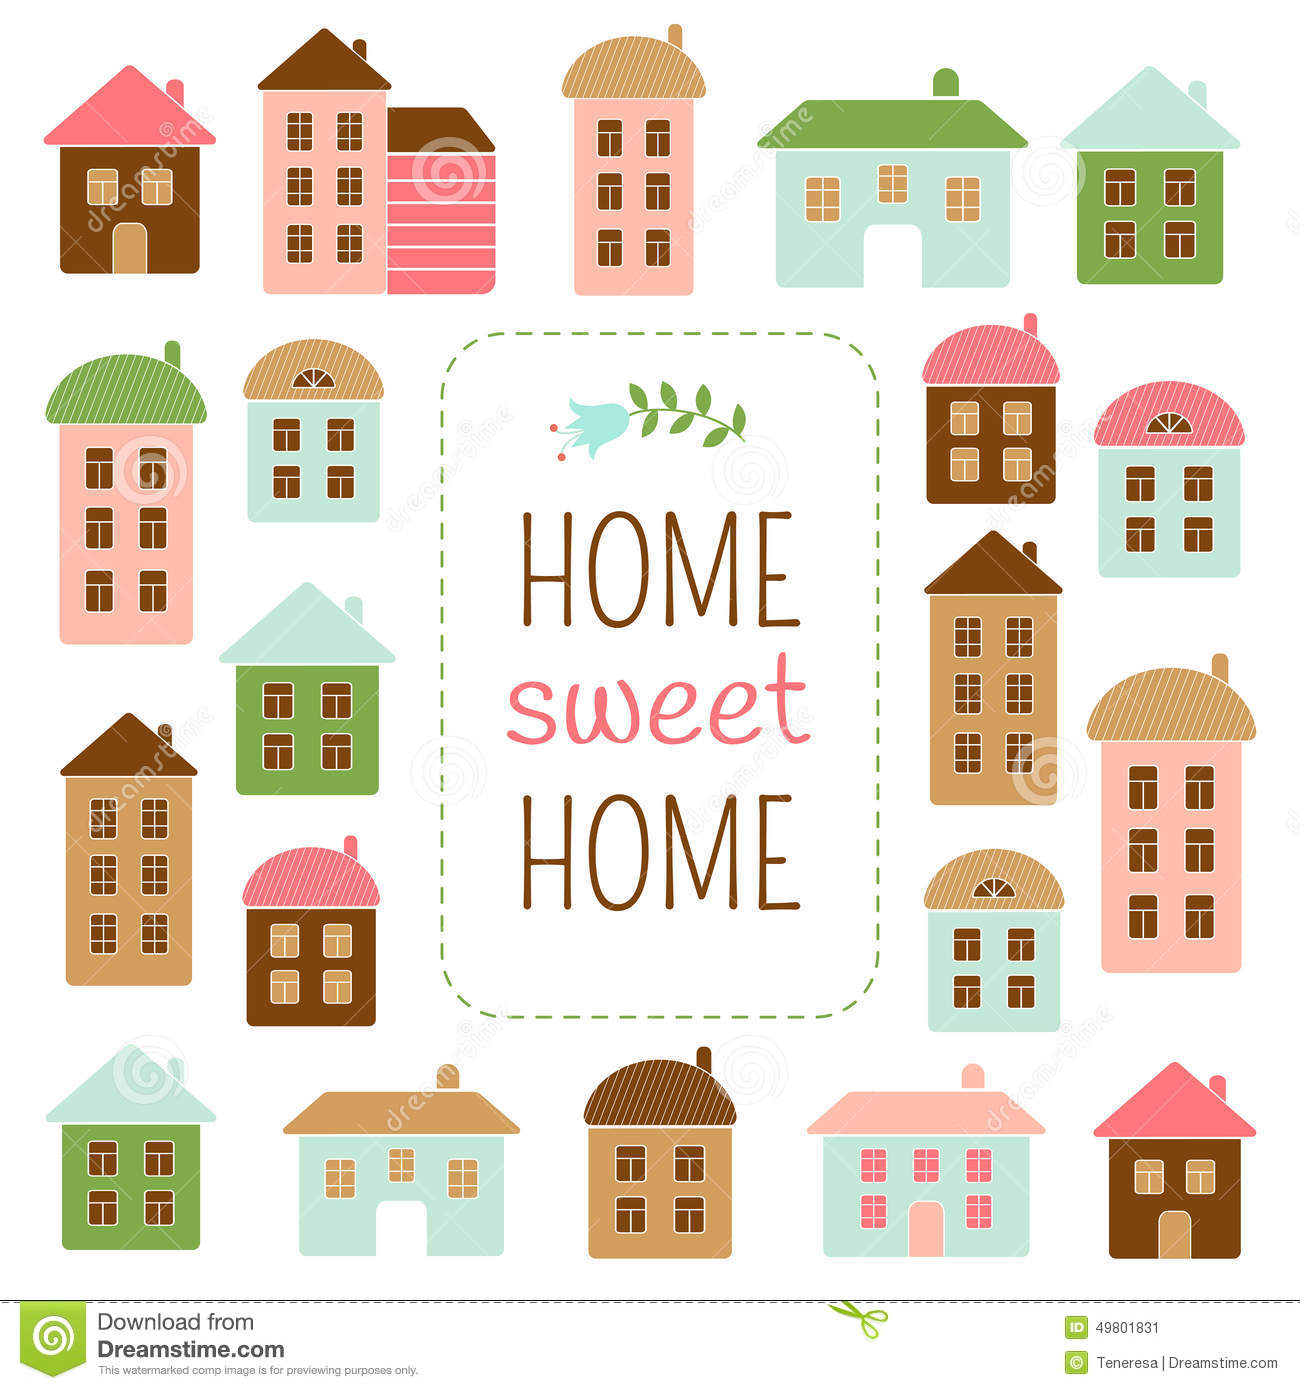 Home sweet home clipart house clip royalty free download Home Sweet Home Stock Vector - Image: 49801831 clip royalty free download